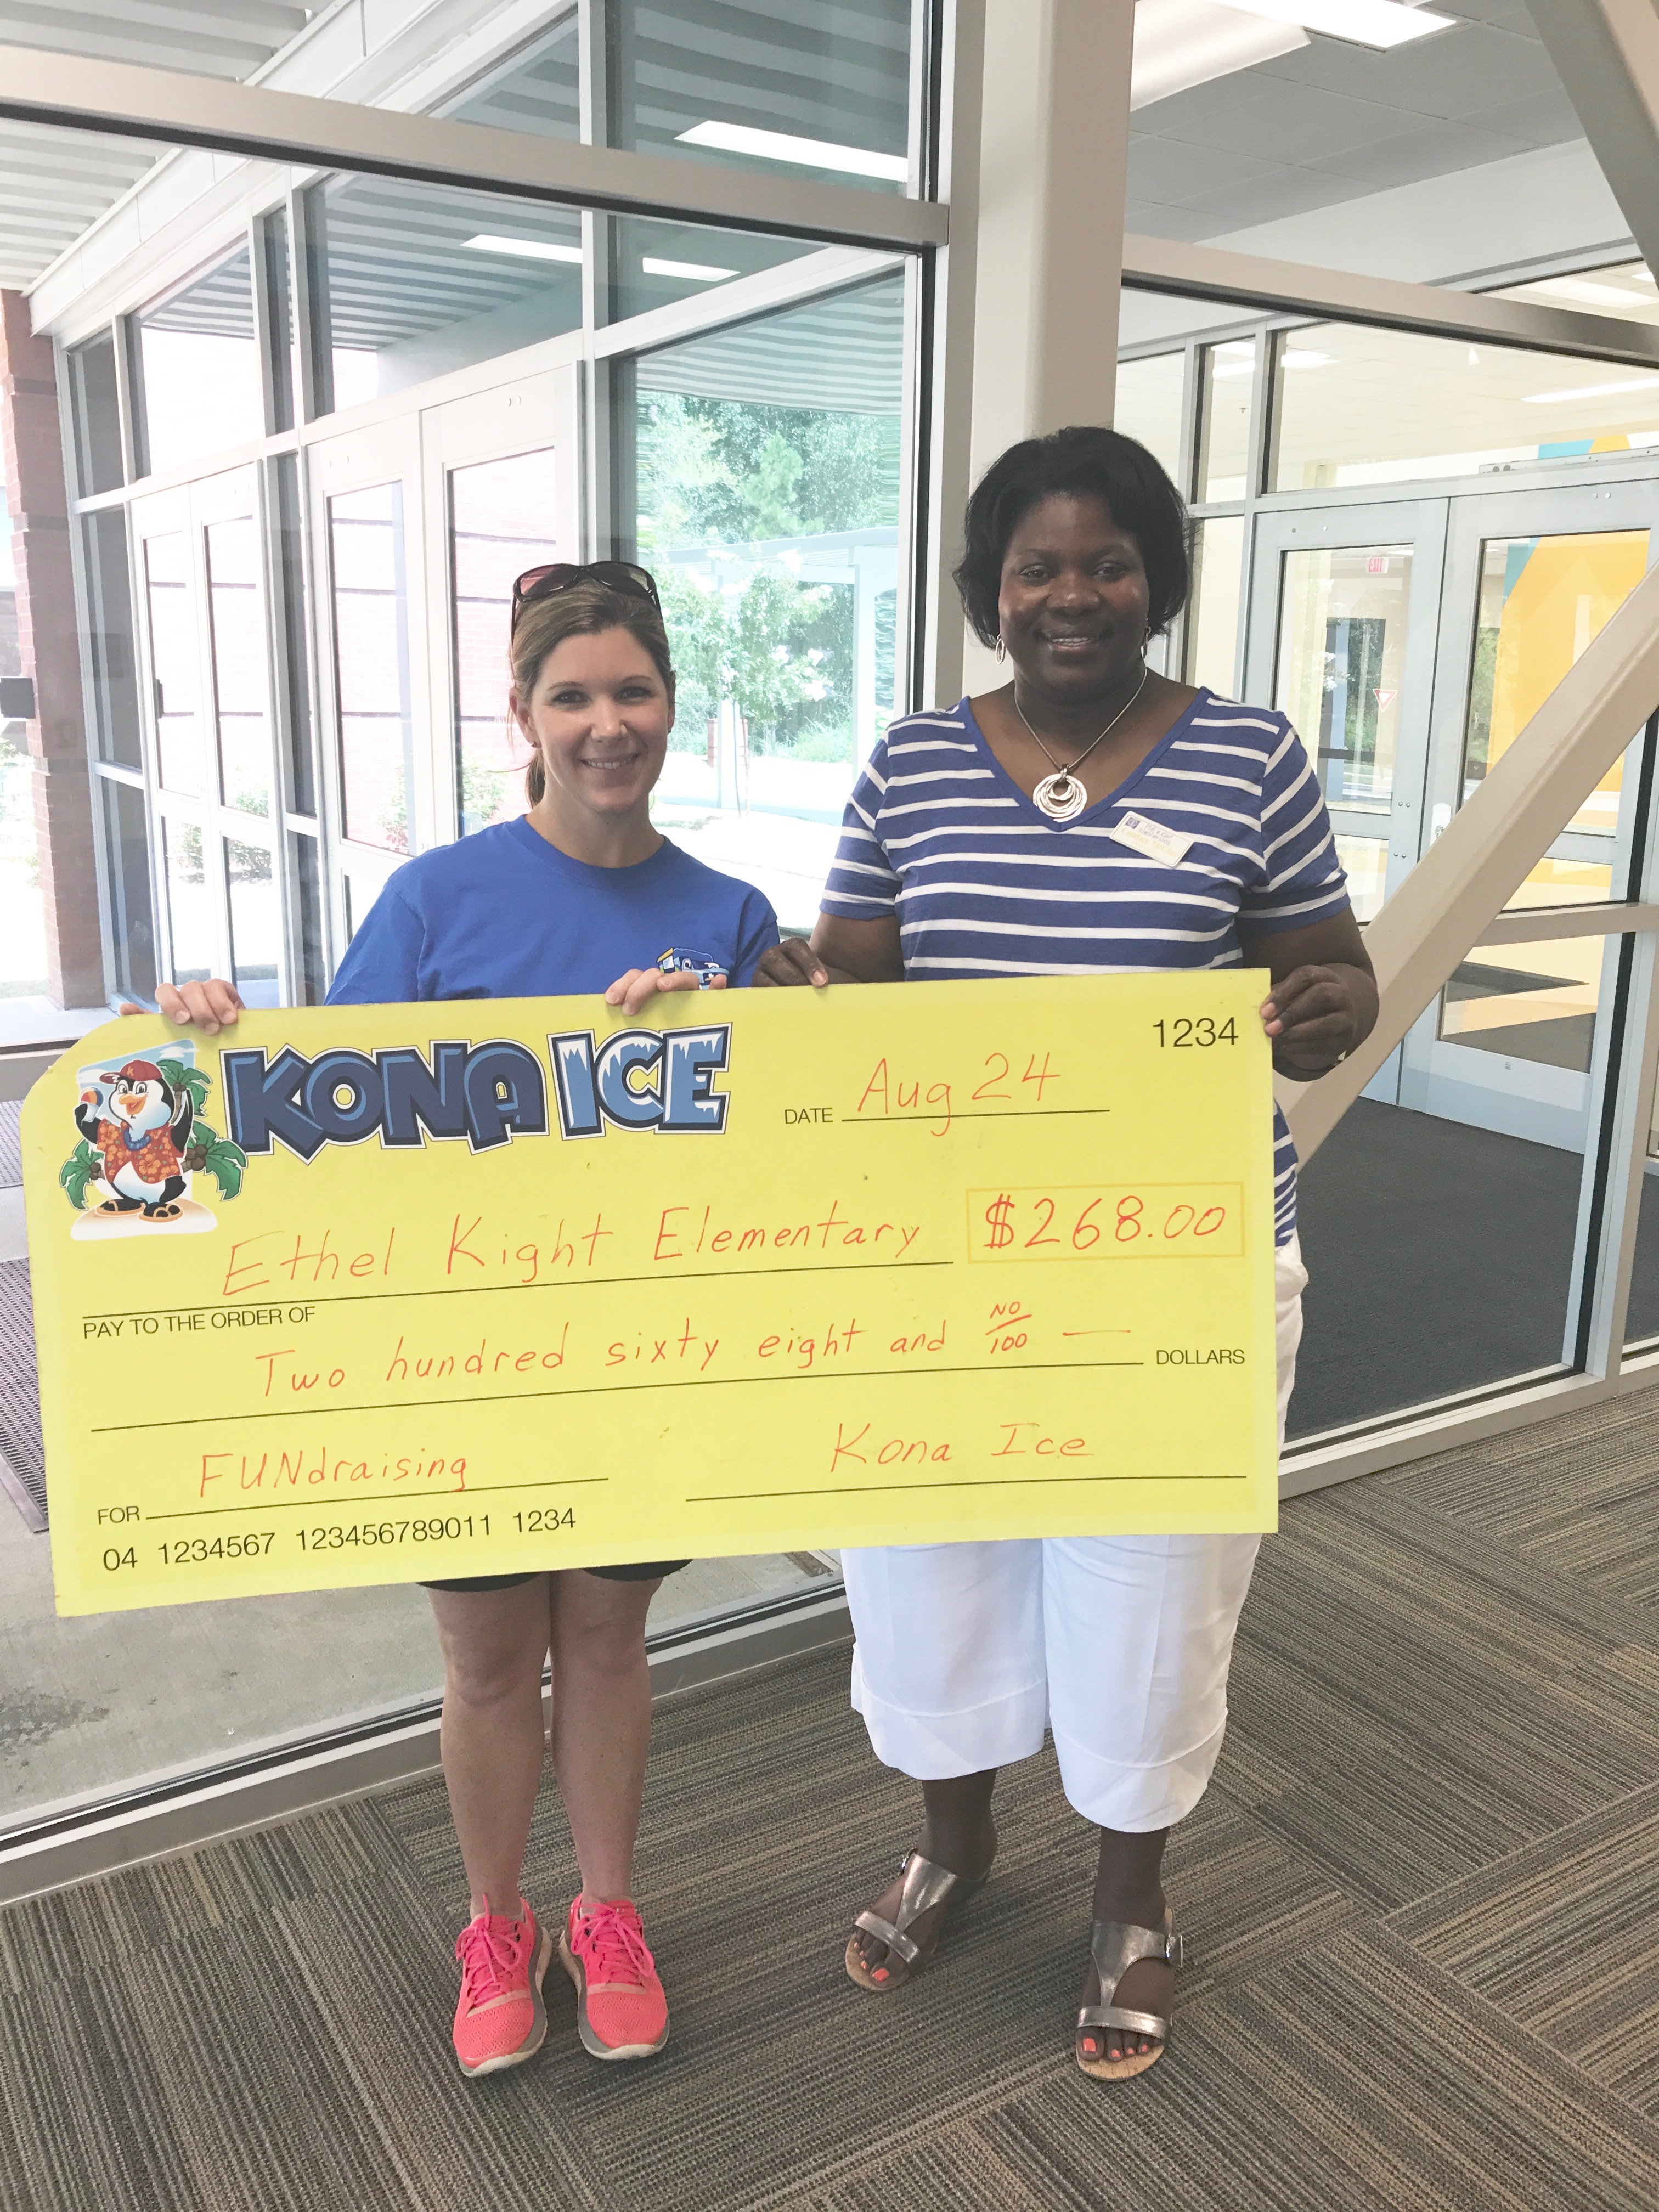 Kona Ice donates to Ethel Kight